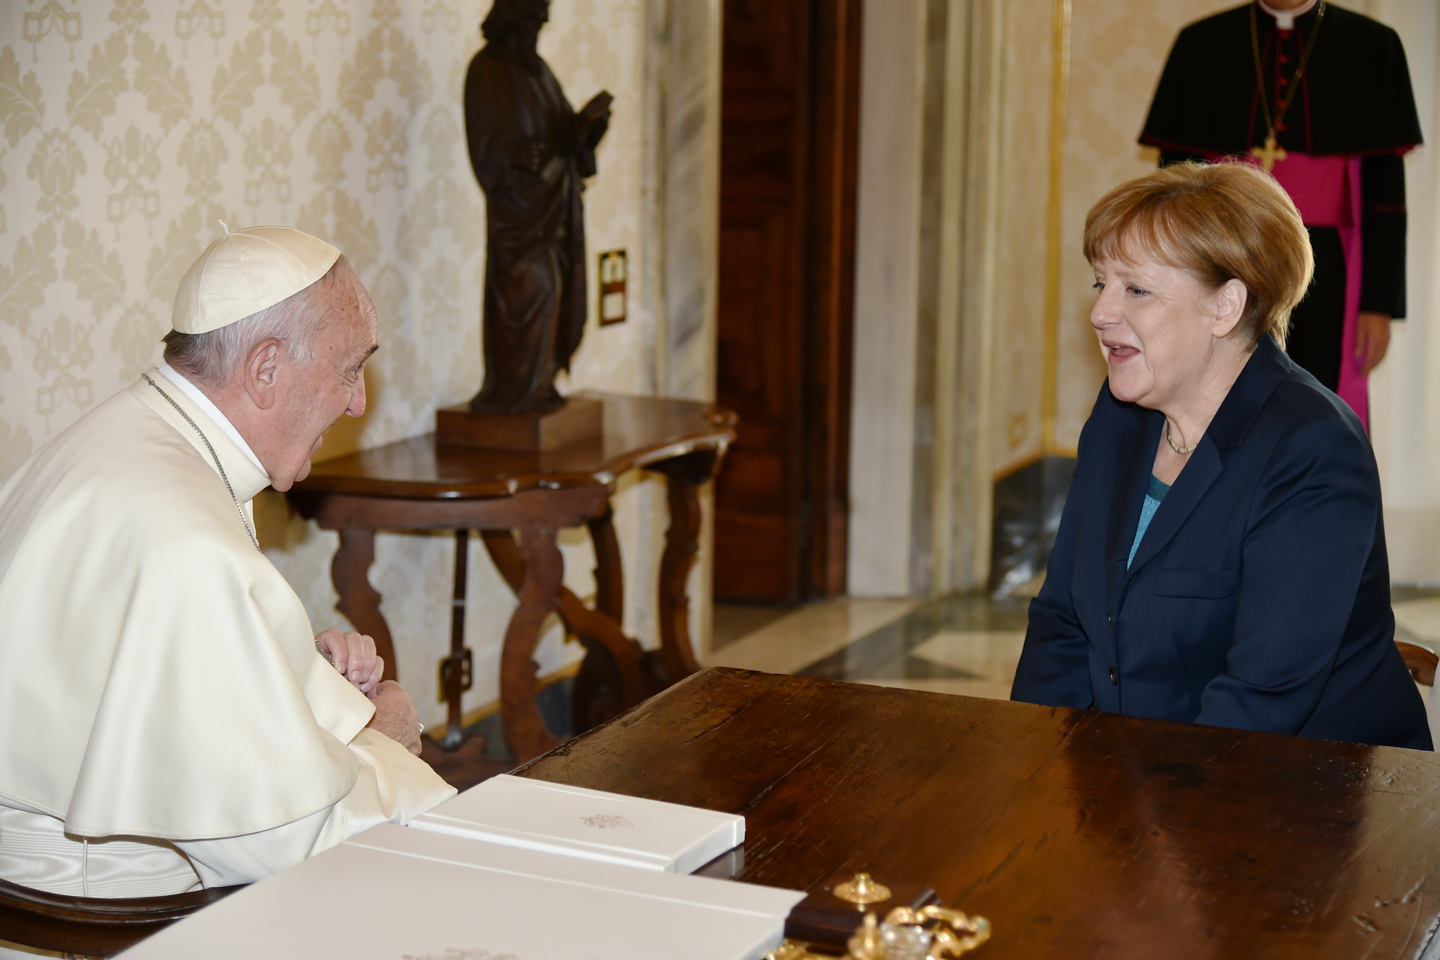 German Chancellor Angela Merkel (R) talks with Pope Francis during a private audience on May 6, 2016 at the Vatican. Merkel is in Rome to take part in a ceremony for the awarding of Germany's famed Charlemagne Prize to Pope Francis, given to public figures in recognition of contribution to European unity. / AFP PHOTO / ALBERTO PIZZOLI